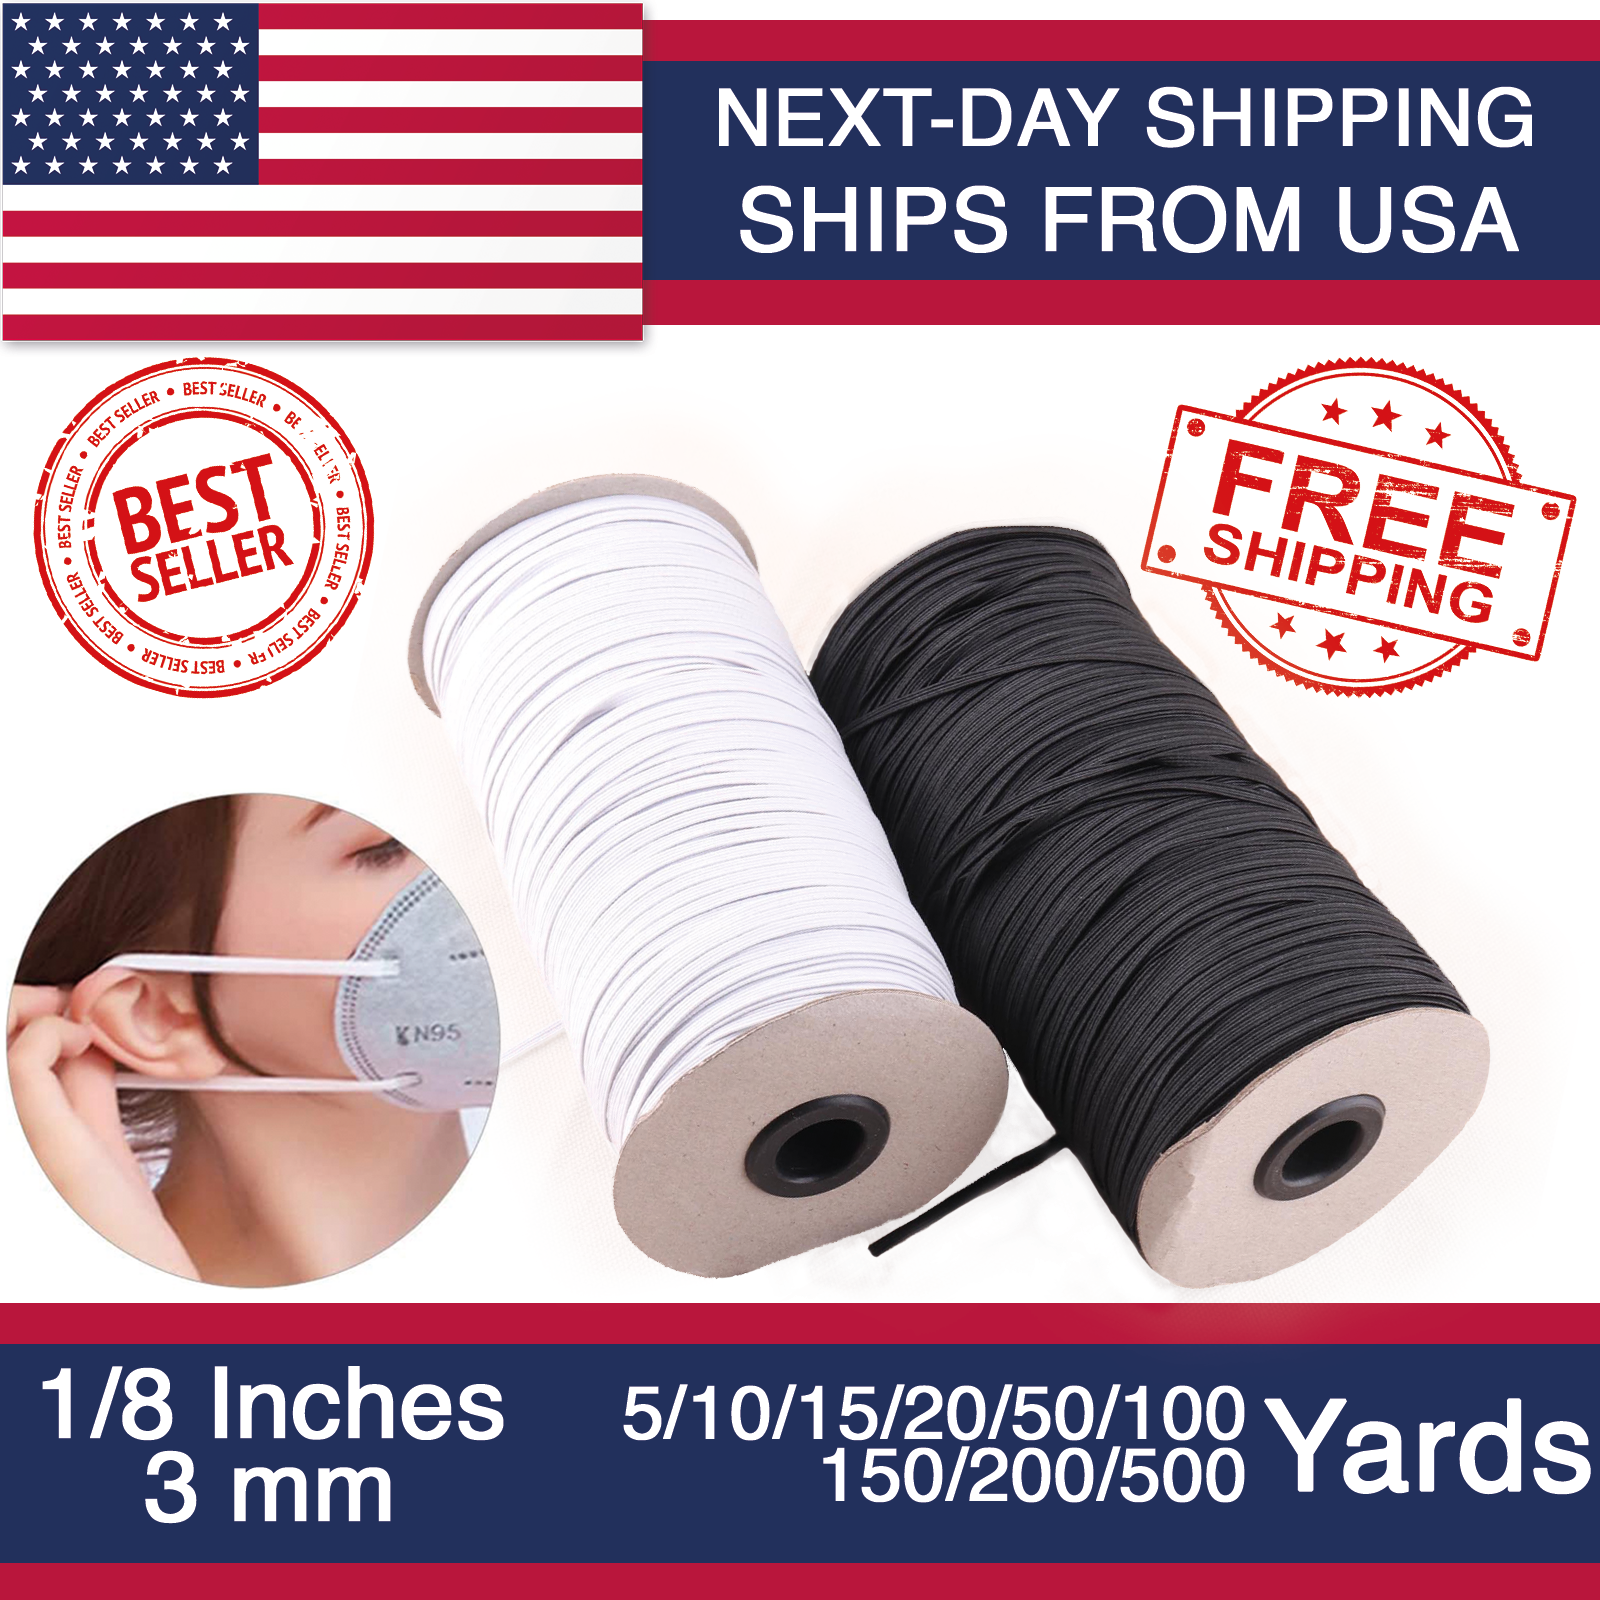 White Flat Braided Elastic Band Yarn Sewing Crafting Diy Cord